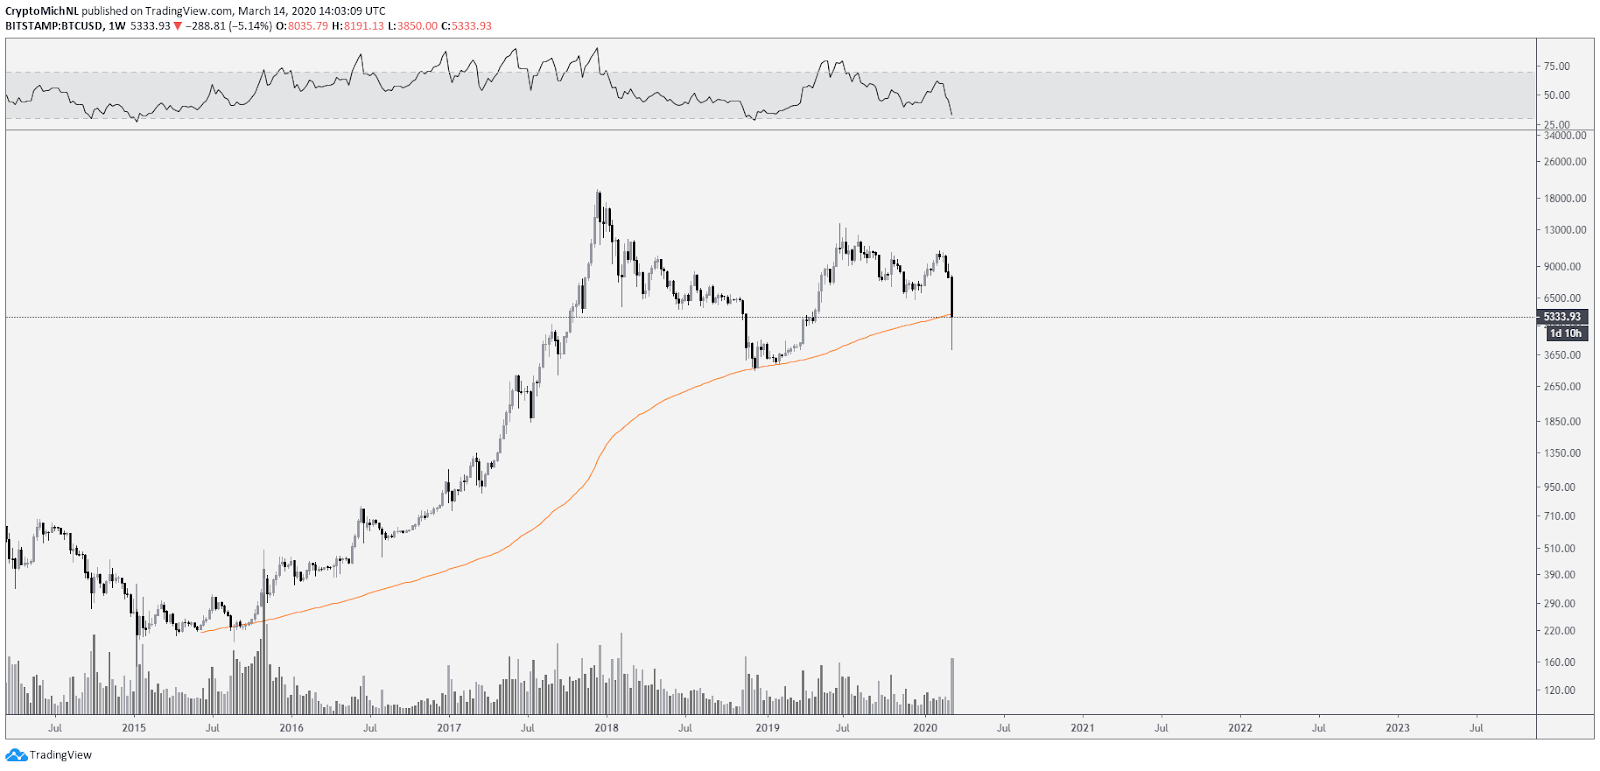 BTC USD 1-week chart. Source: TradingView